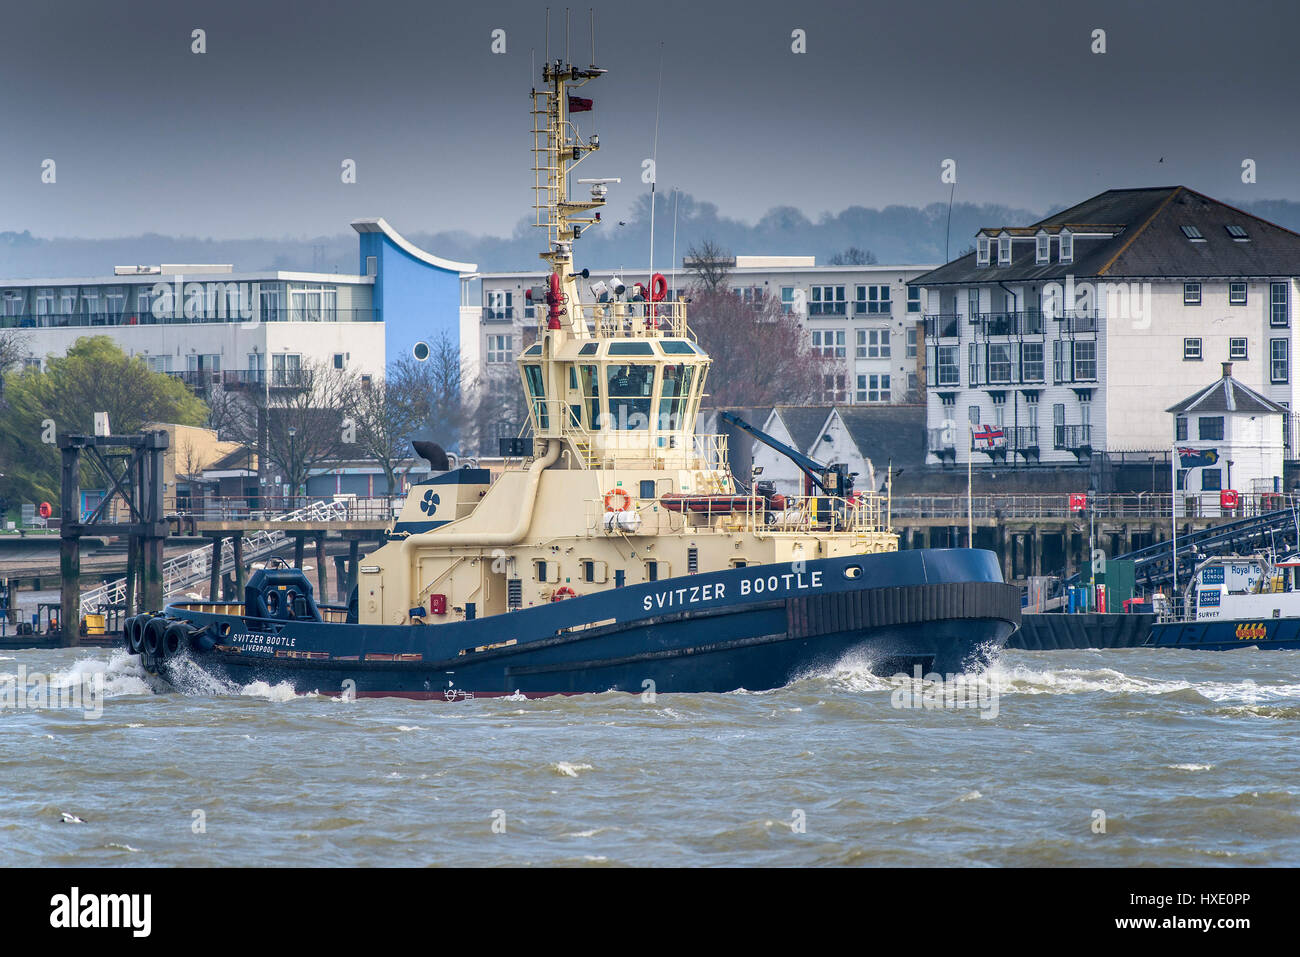 The tug Spitzer Bootle steaming upriver on the River Thames in the UK. - Stock Image